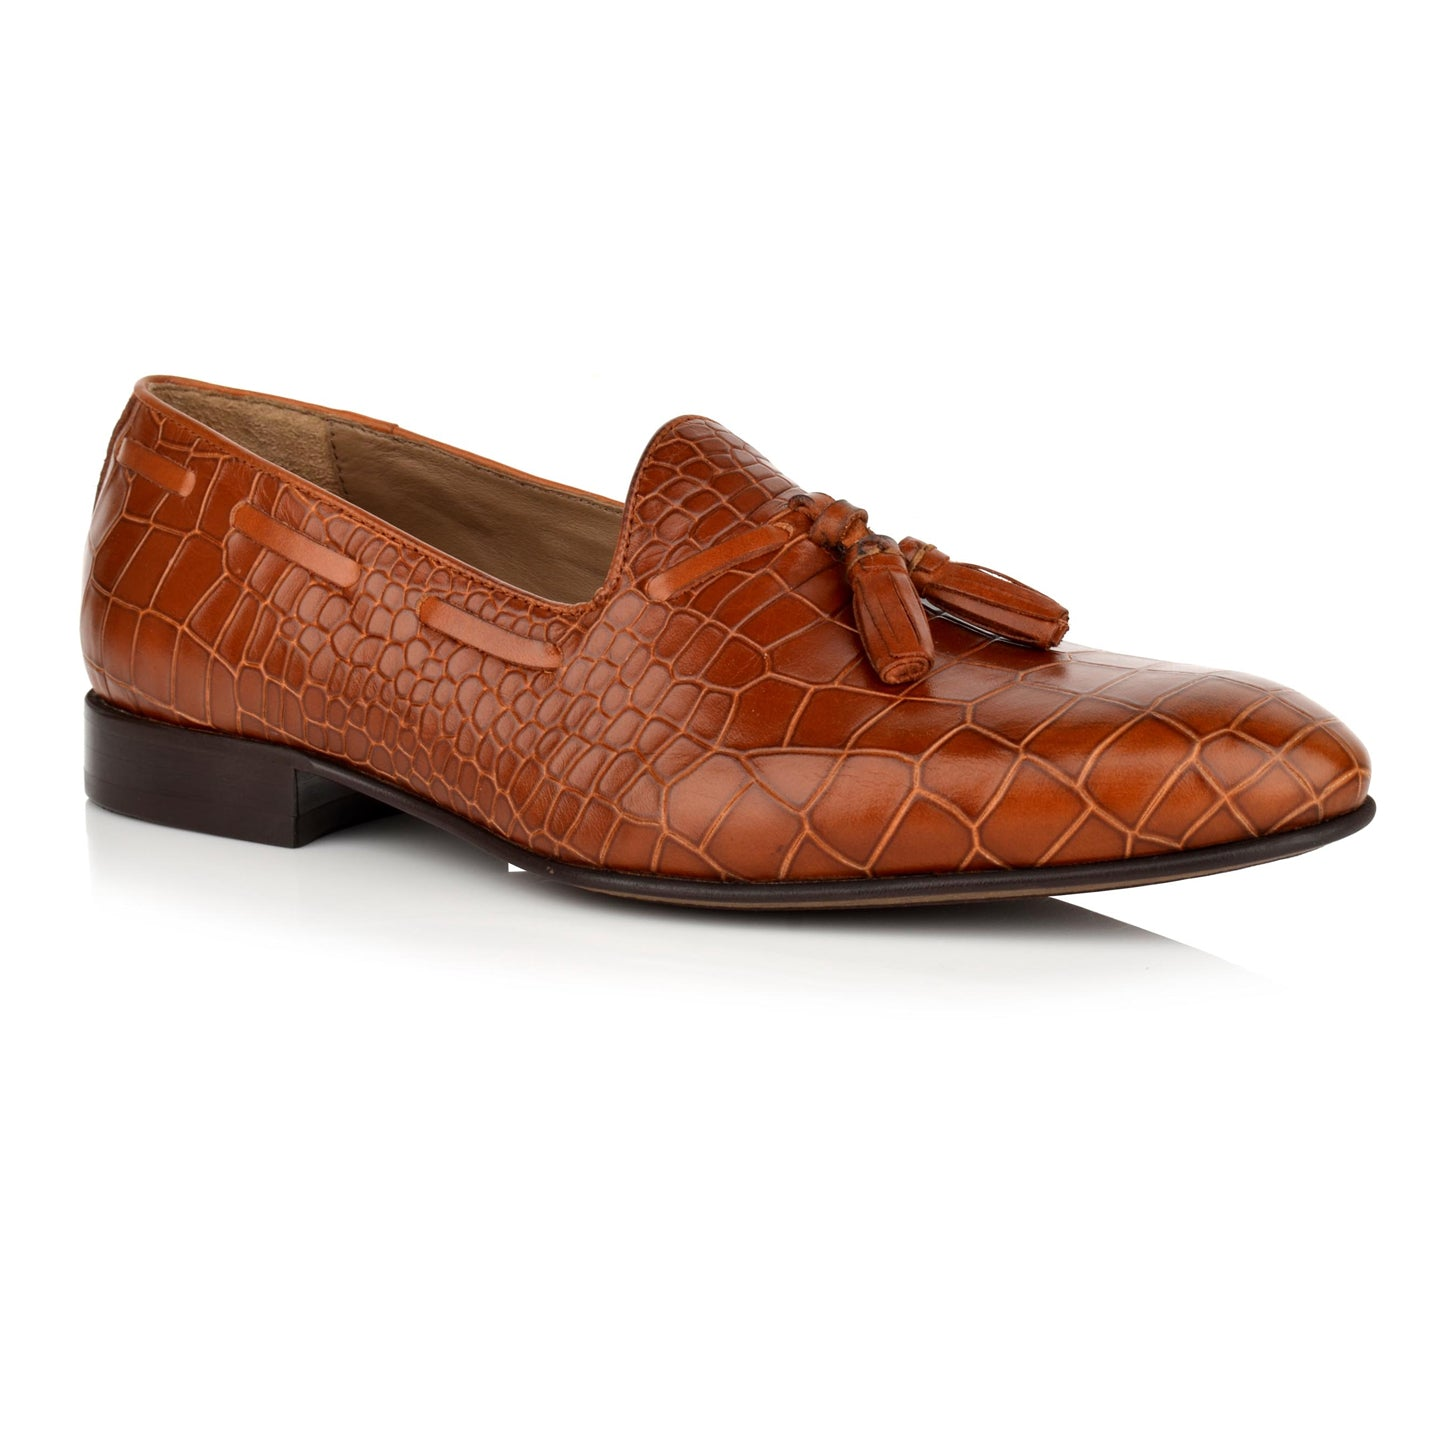 LM434 - Language Men's Tig Tan Dress Loafers